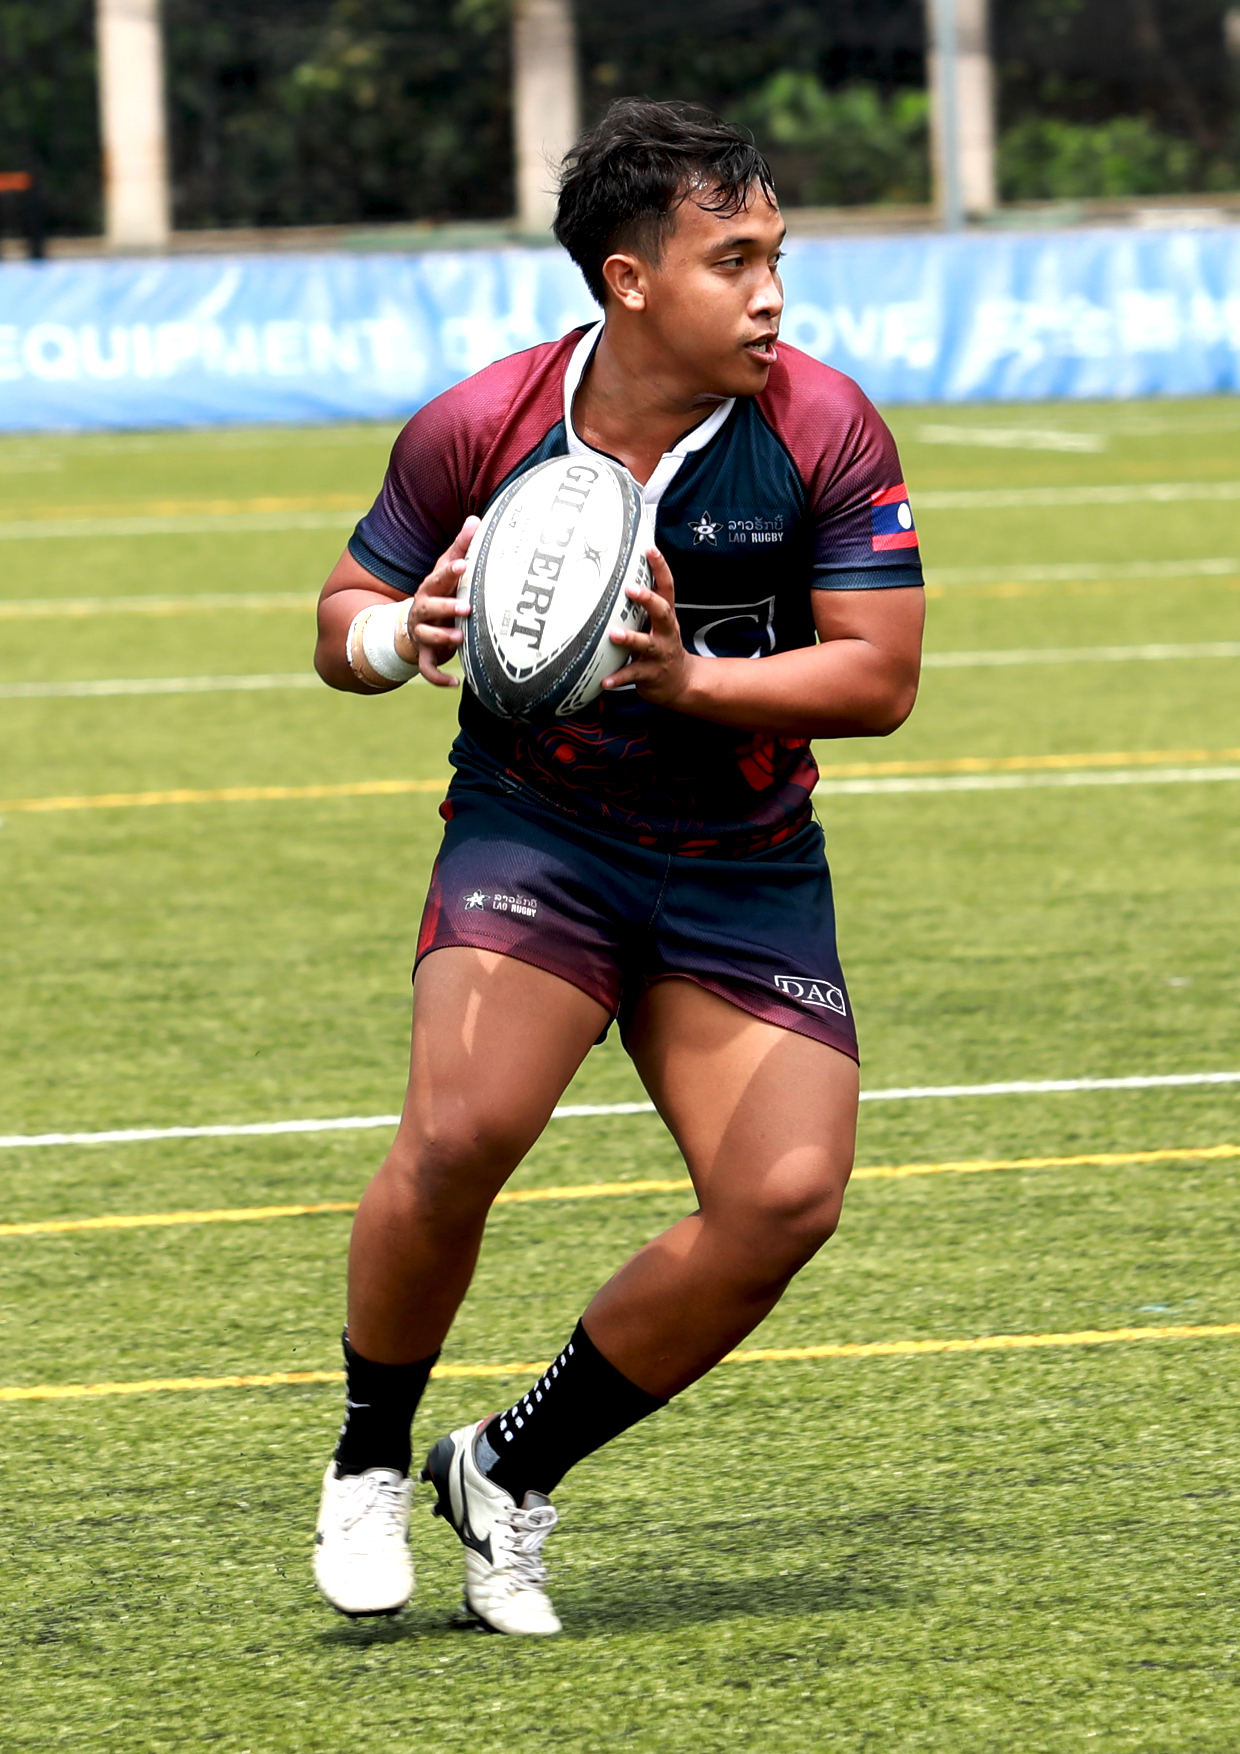 Lay, a crucial member of the local Vientiane Wild Hogs, represented Laos as part of the DAC Lao National Team in the 2019 and the 2018 Asia Rugby 7s Trophy tournaments held in Indonesia and Singapore respectively.